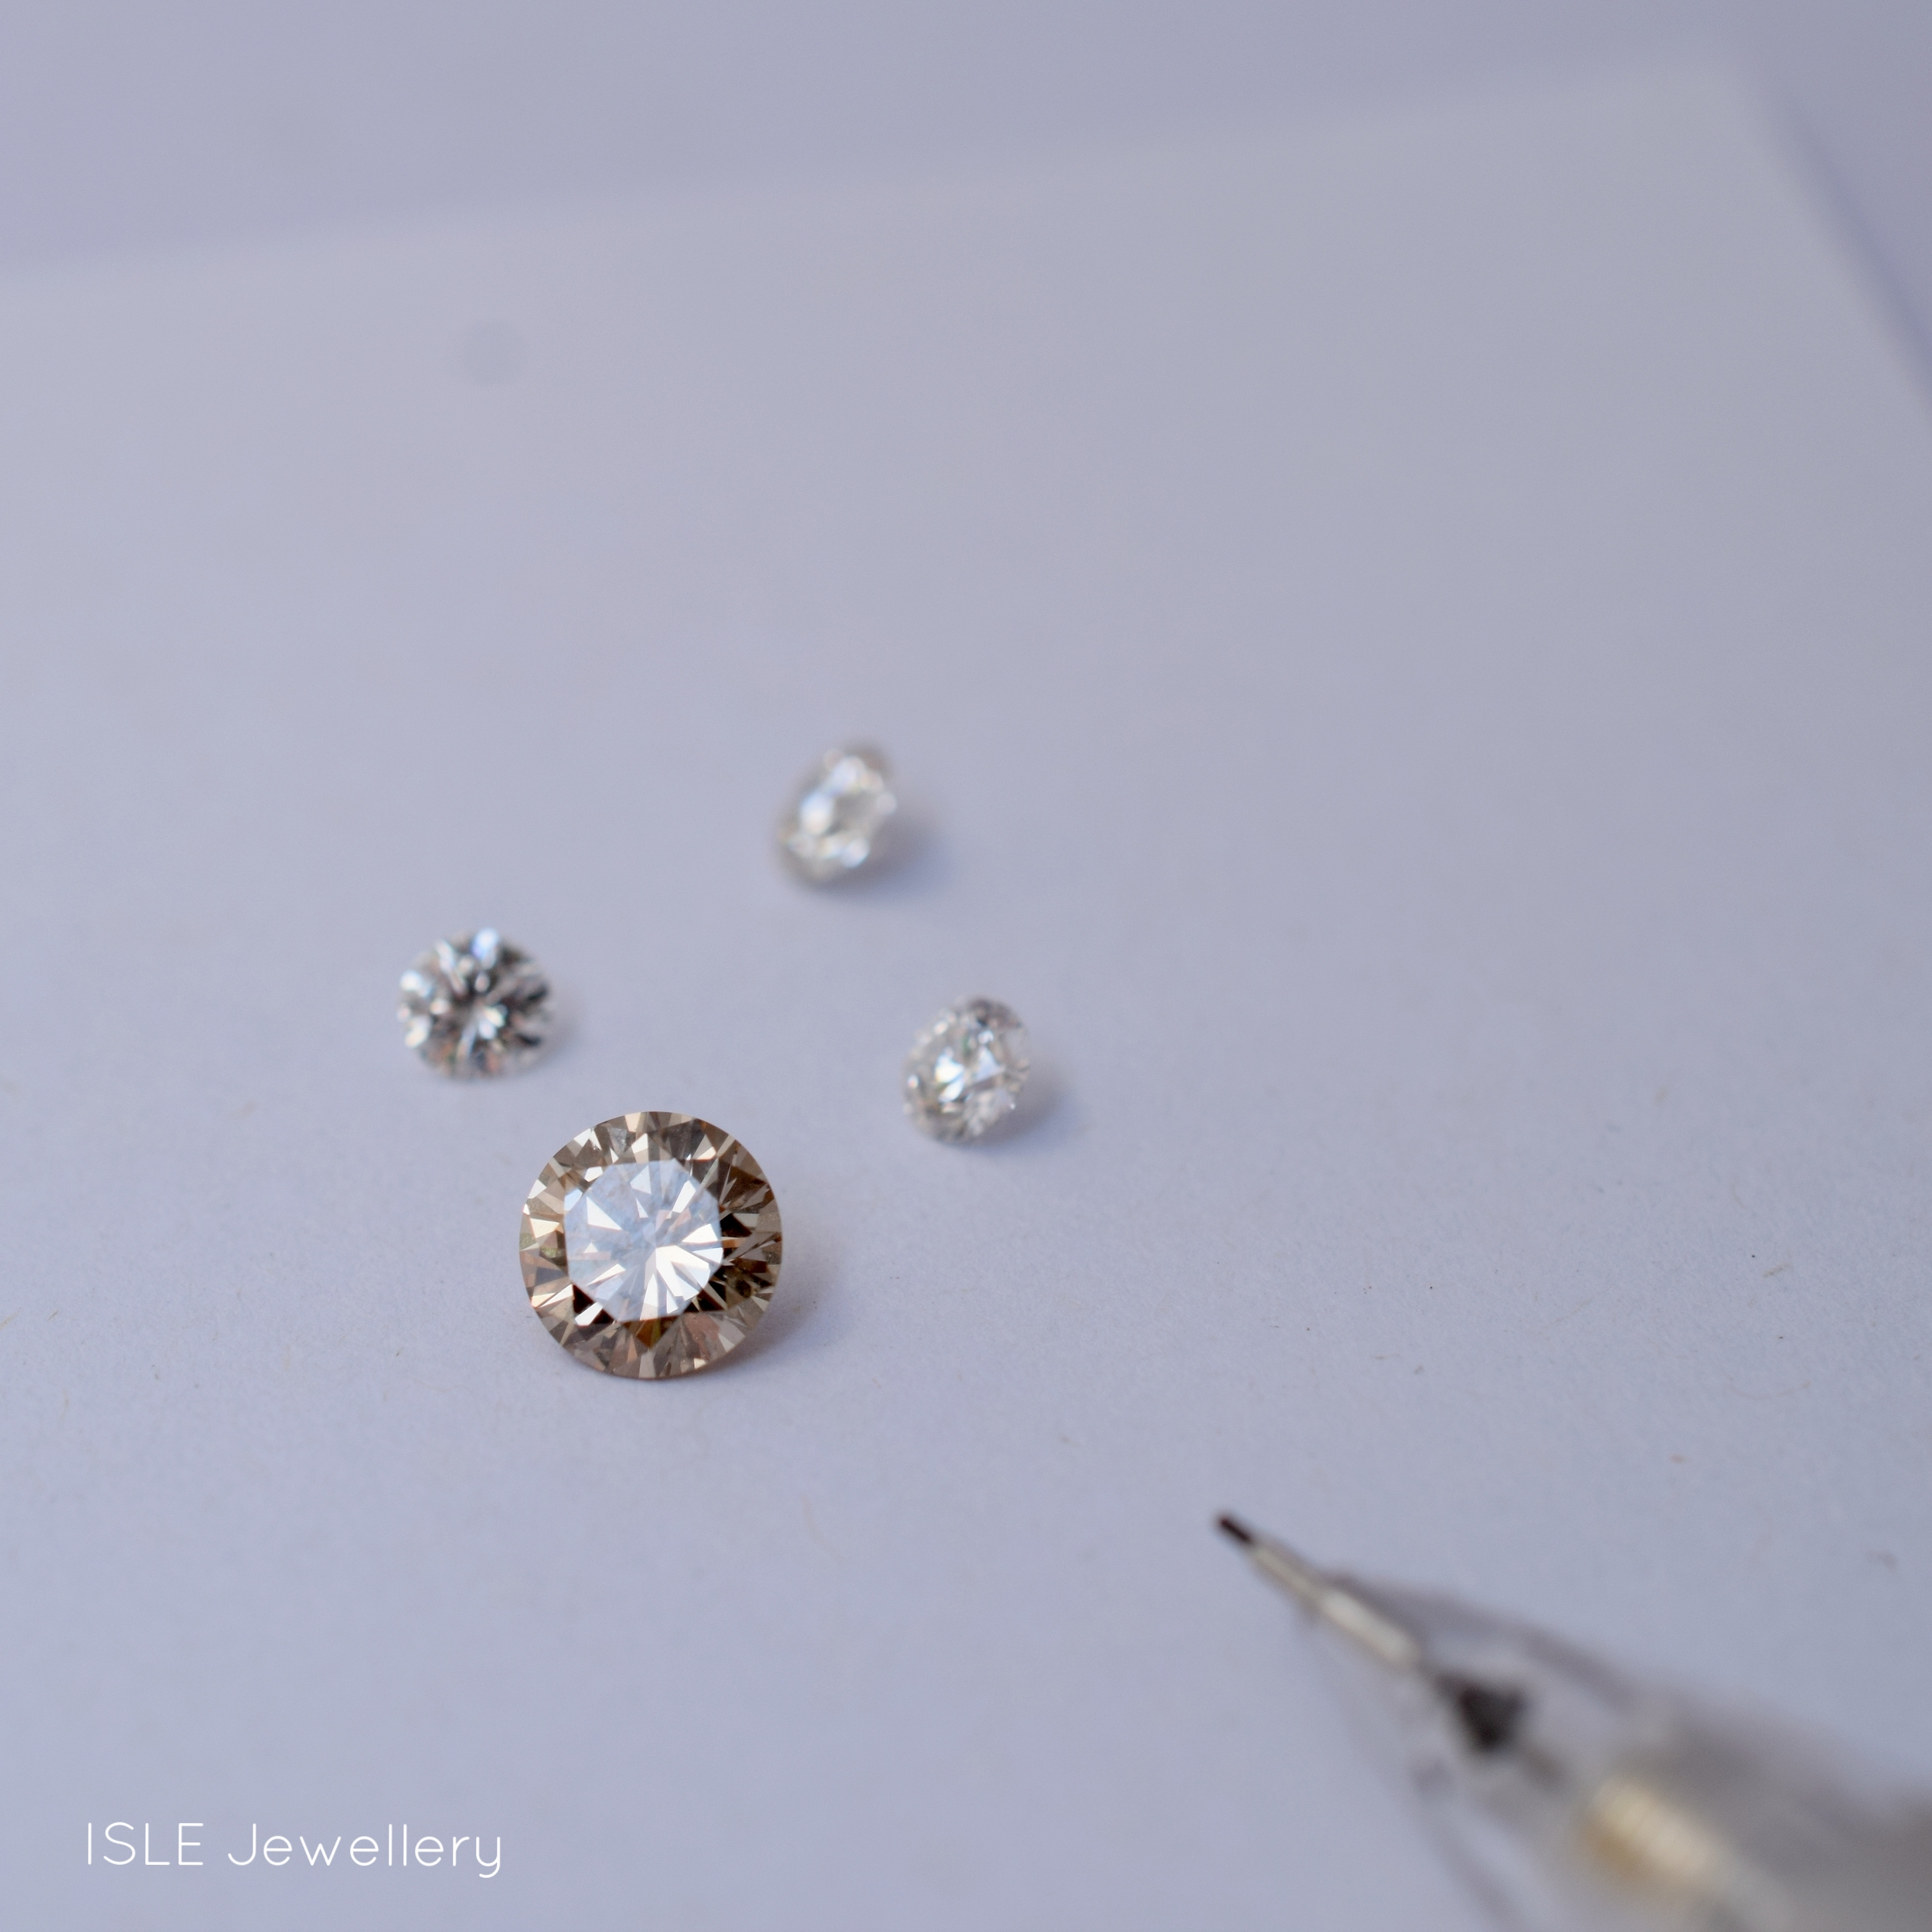 ISLEjewellery.customdesign